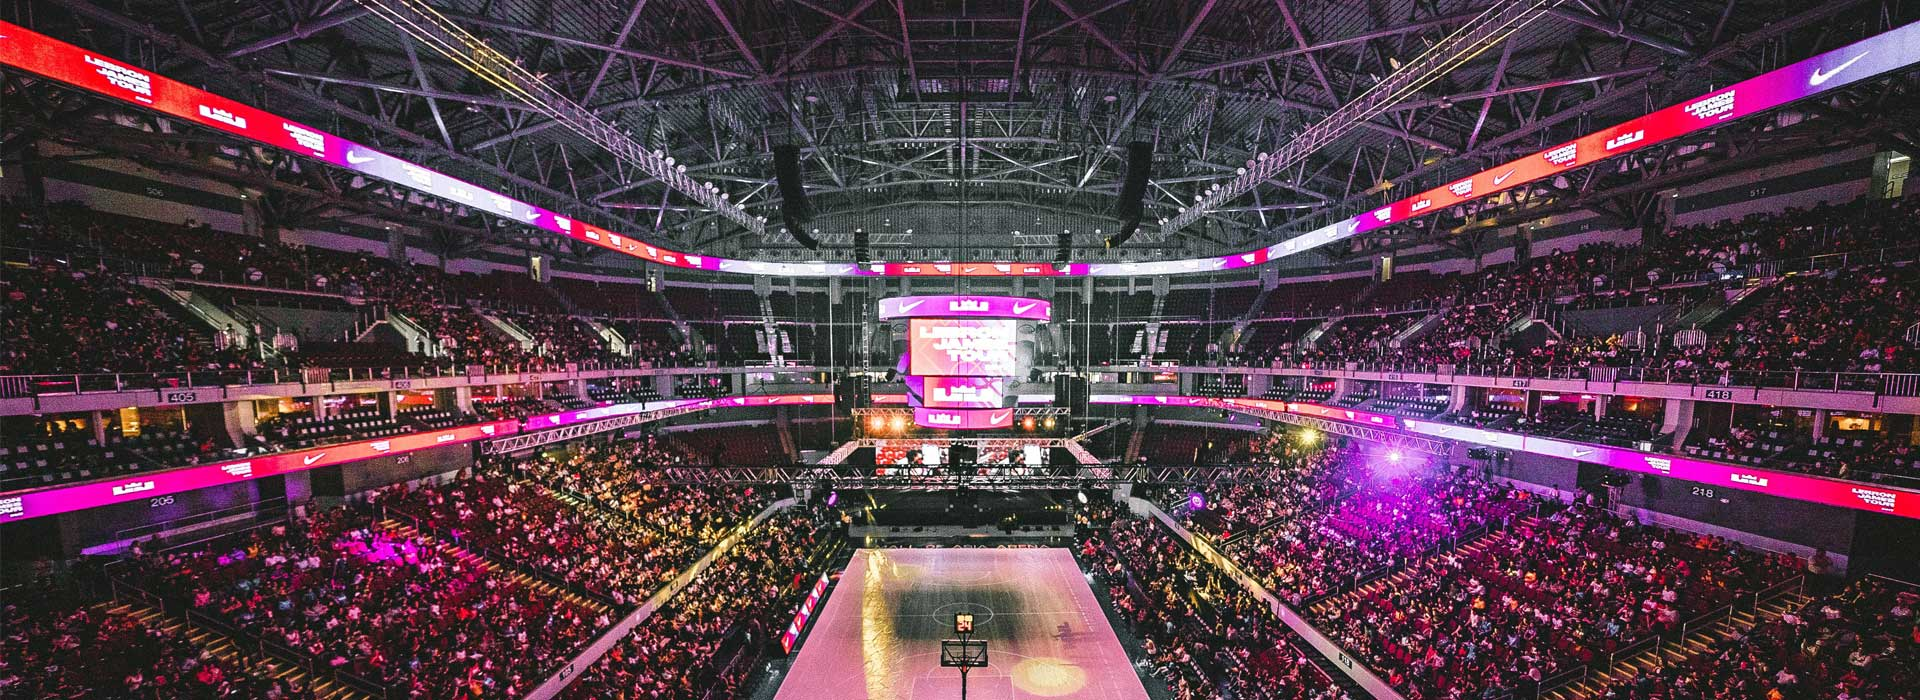 EMERGENCE OF ESPORTS AND THE AMENITY OF THE FUTURE USA